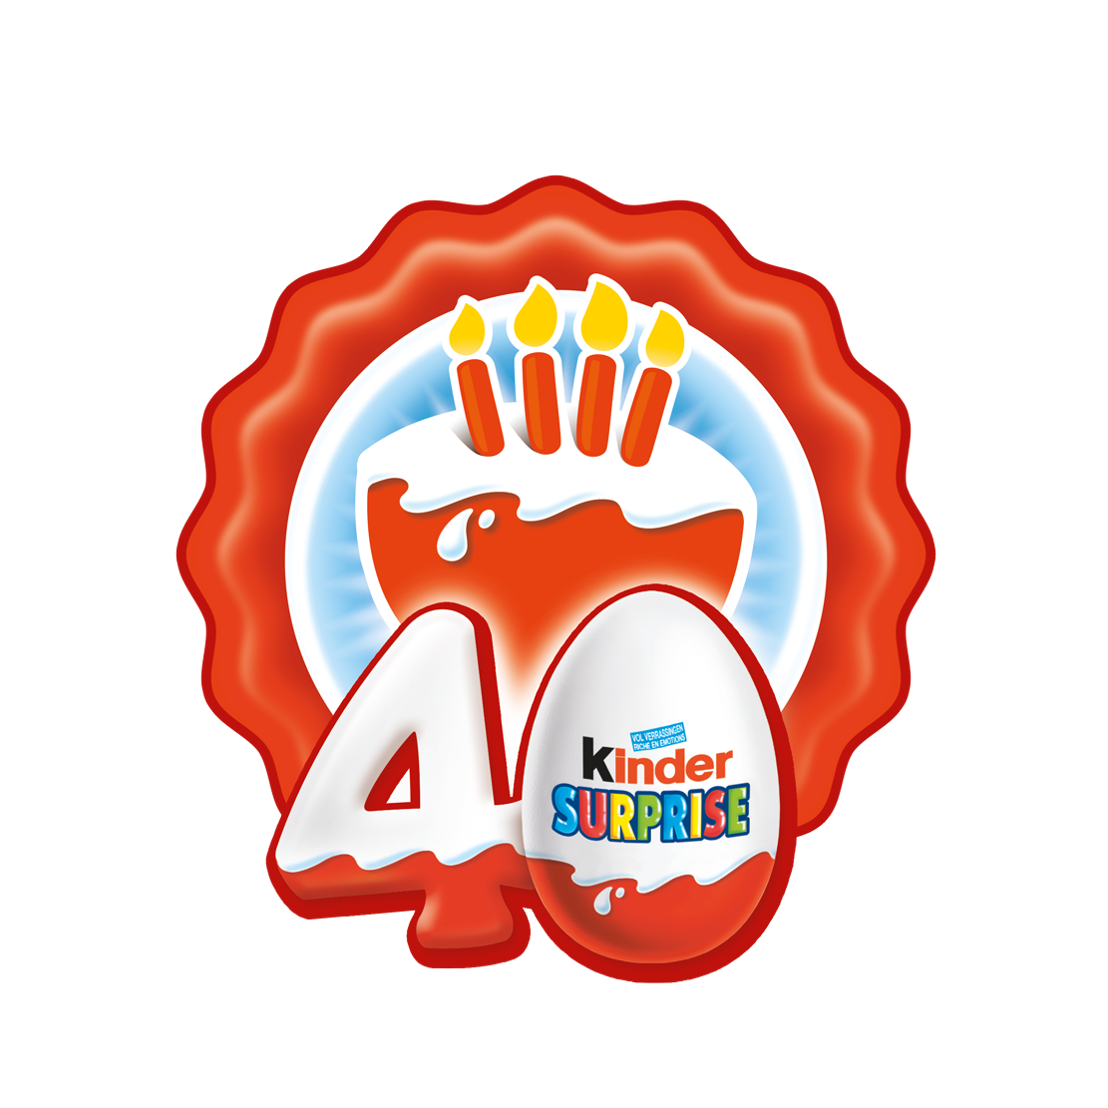 Logo Kinder Surprise 40 ans